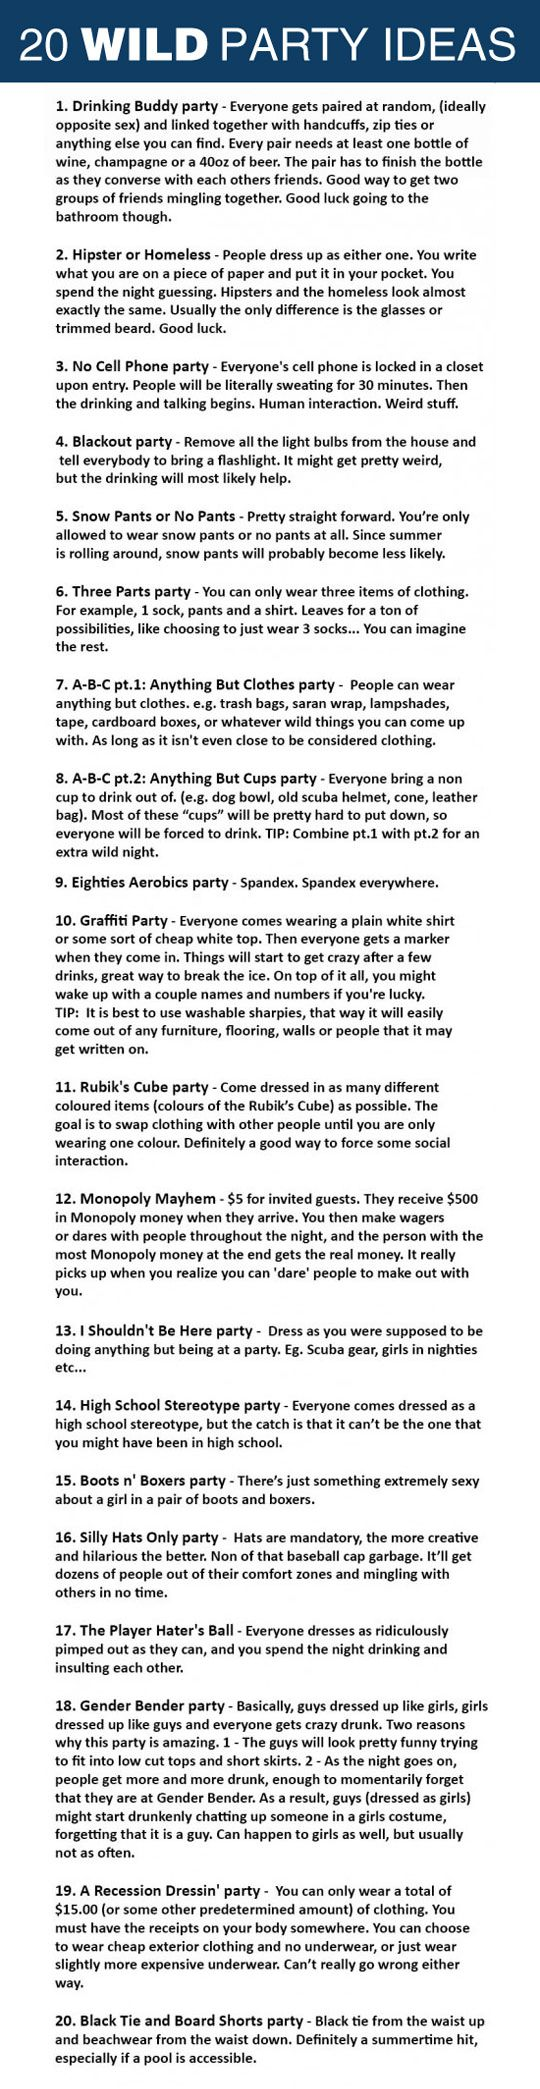 20 wild party ideas. #6 I see what you did there.